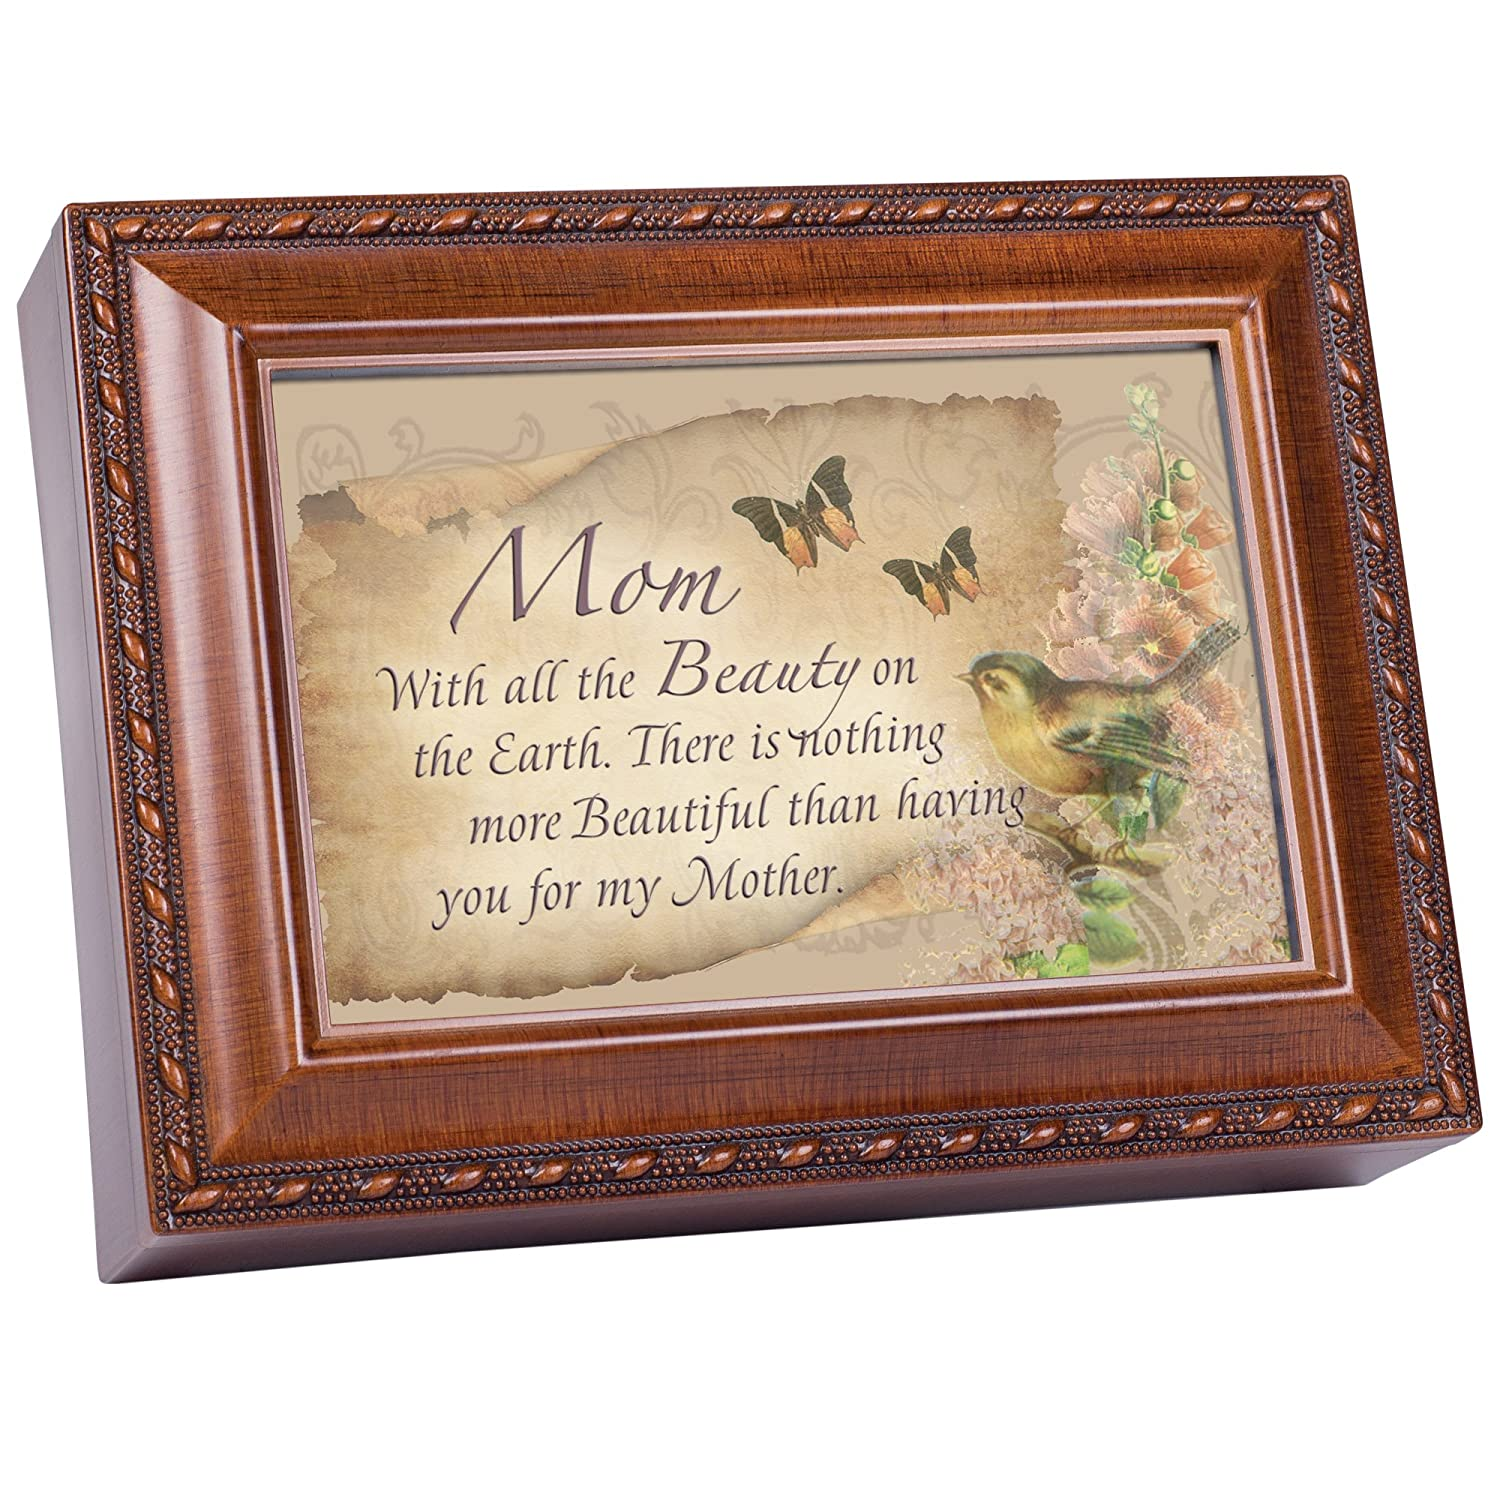 感謝の声続々! Cottage Garden Music Box Music Box - Mom The Beauty Plays With You Light Up My Life With Woodgrain Finish B0065OEEE8, D-FORME:9737211e --- arcego.dominiotemporario.com